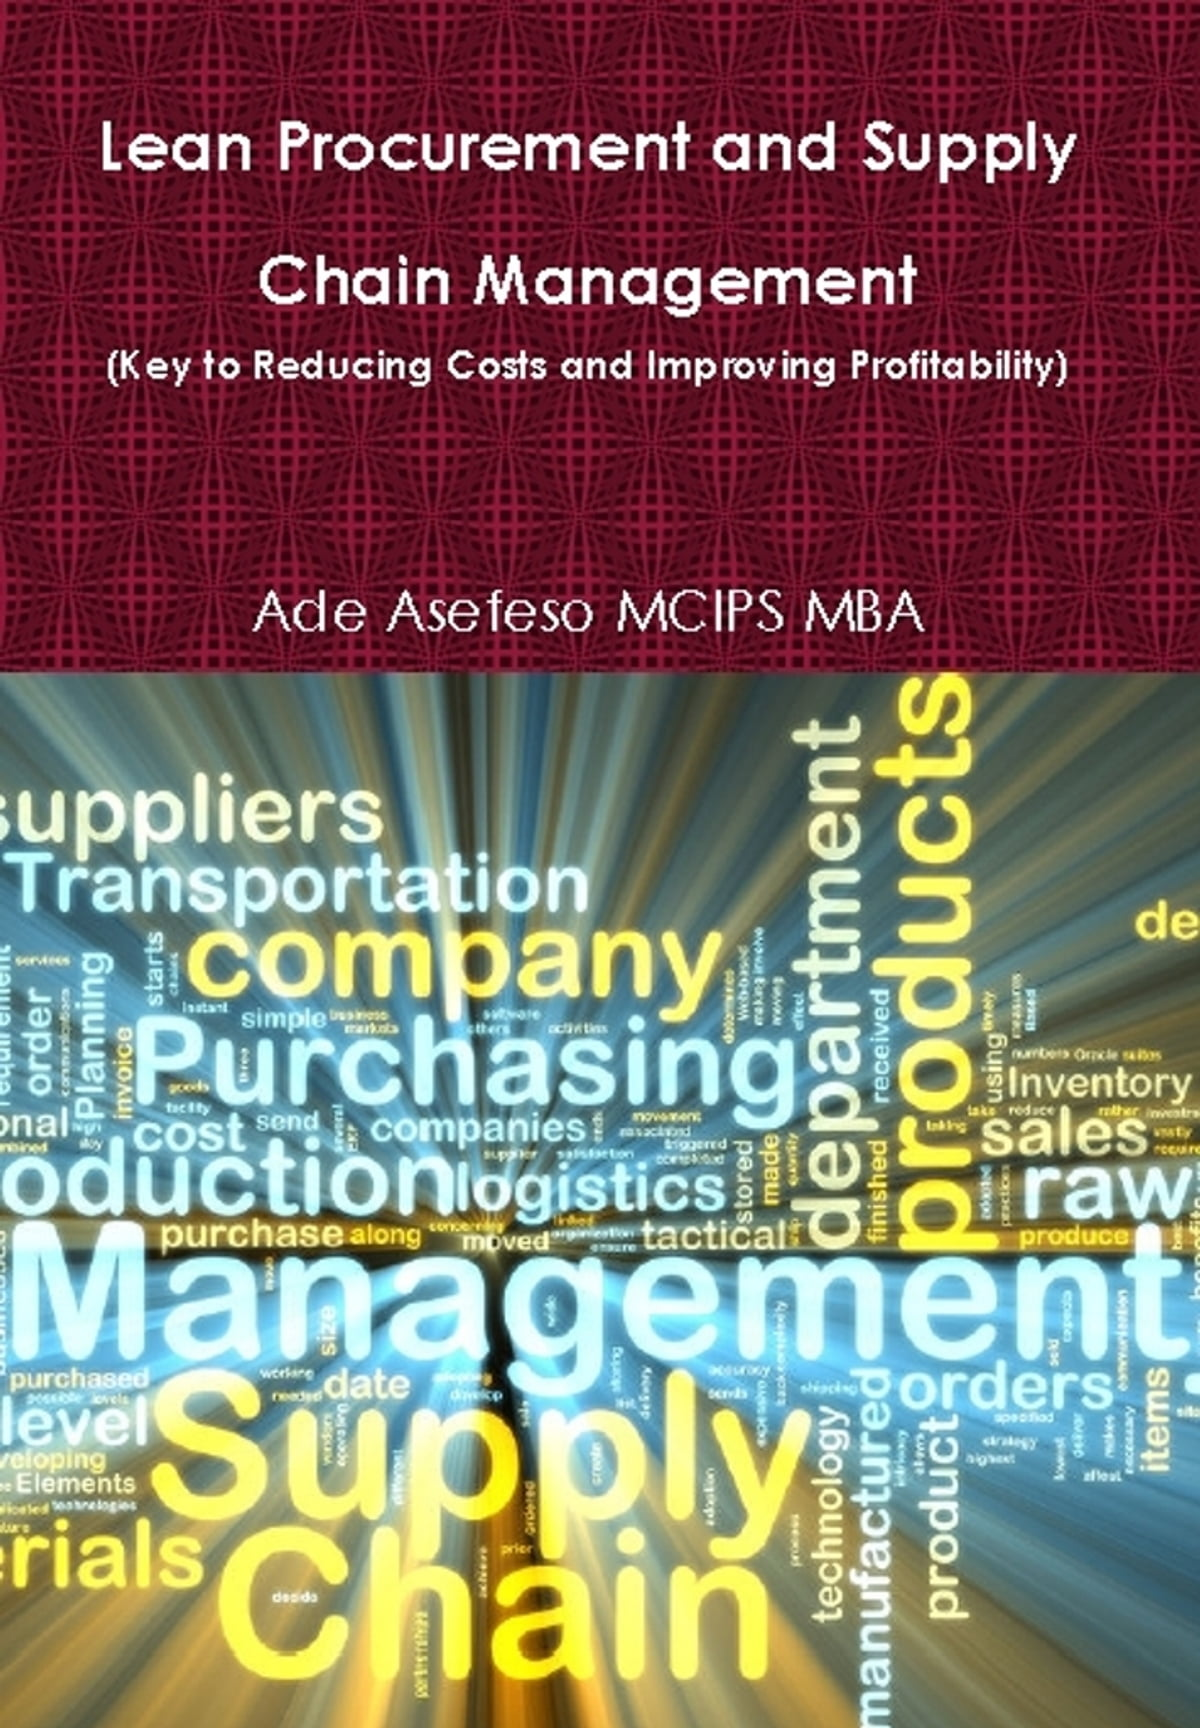 4th ebook free purchasing chain download management edition and supply